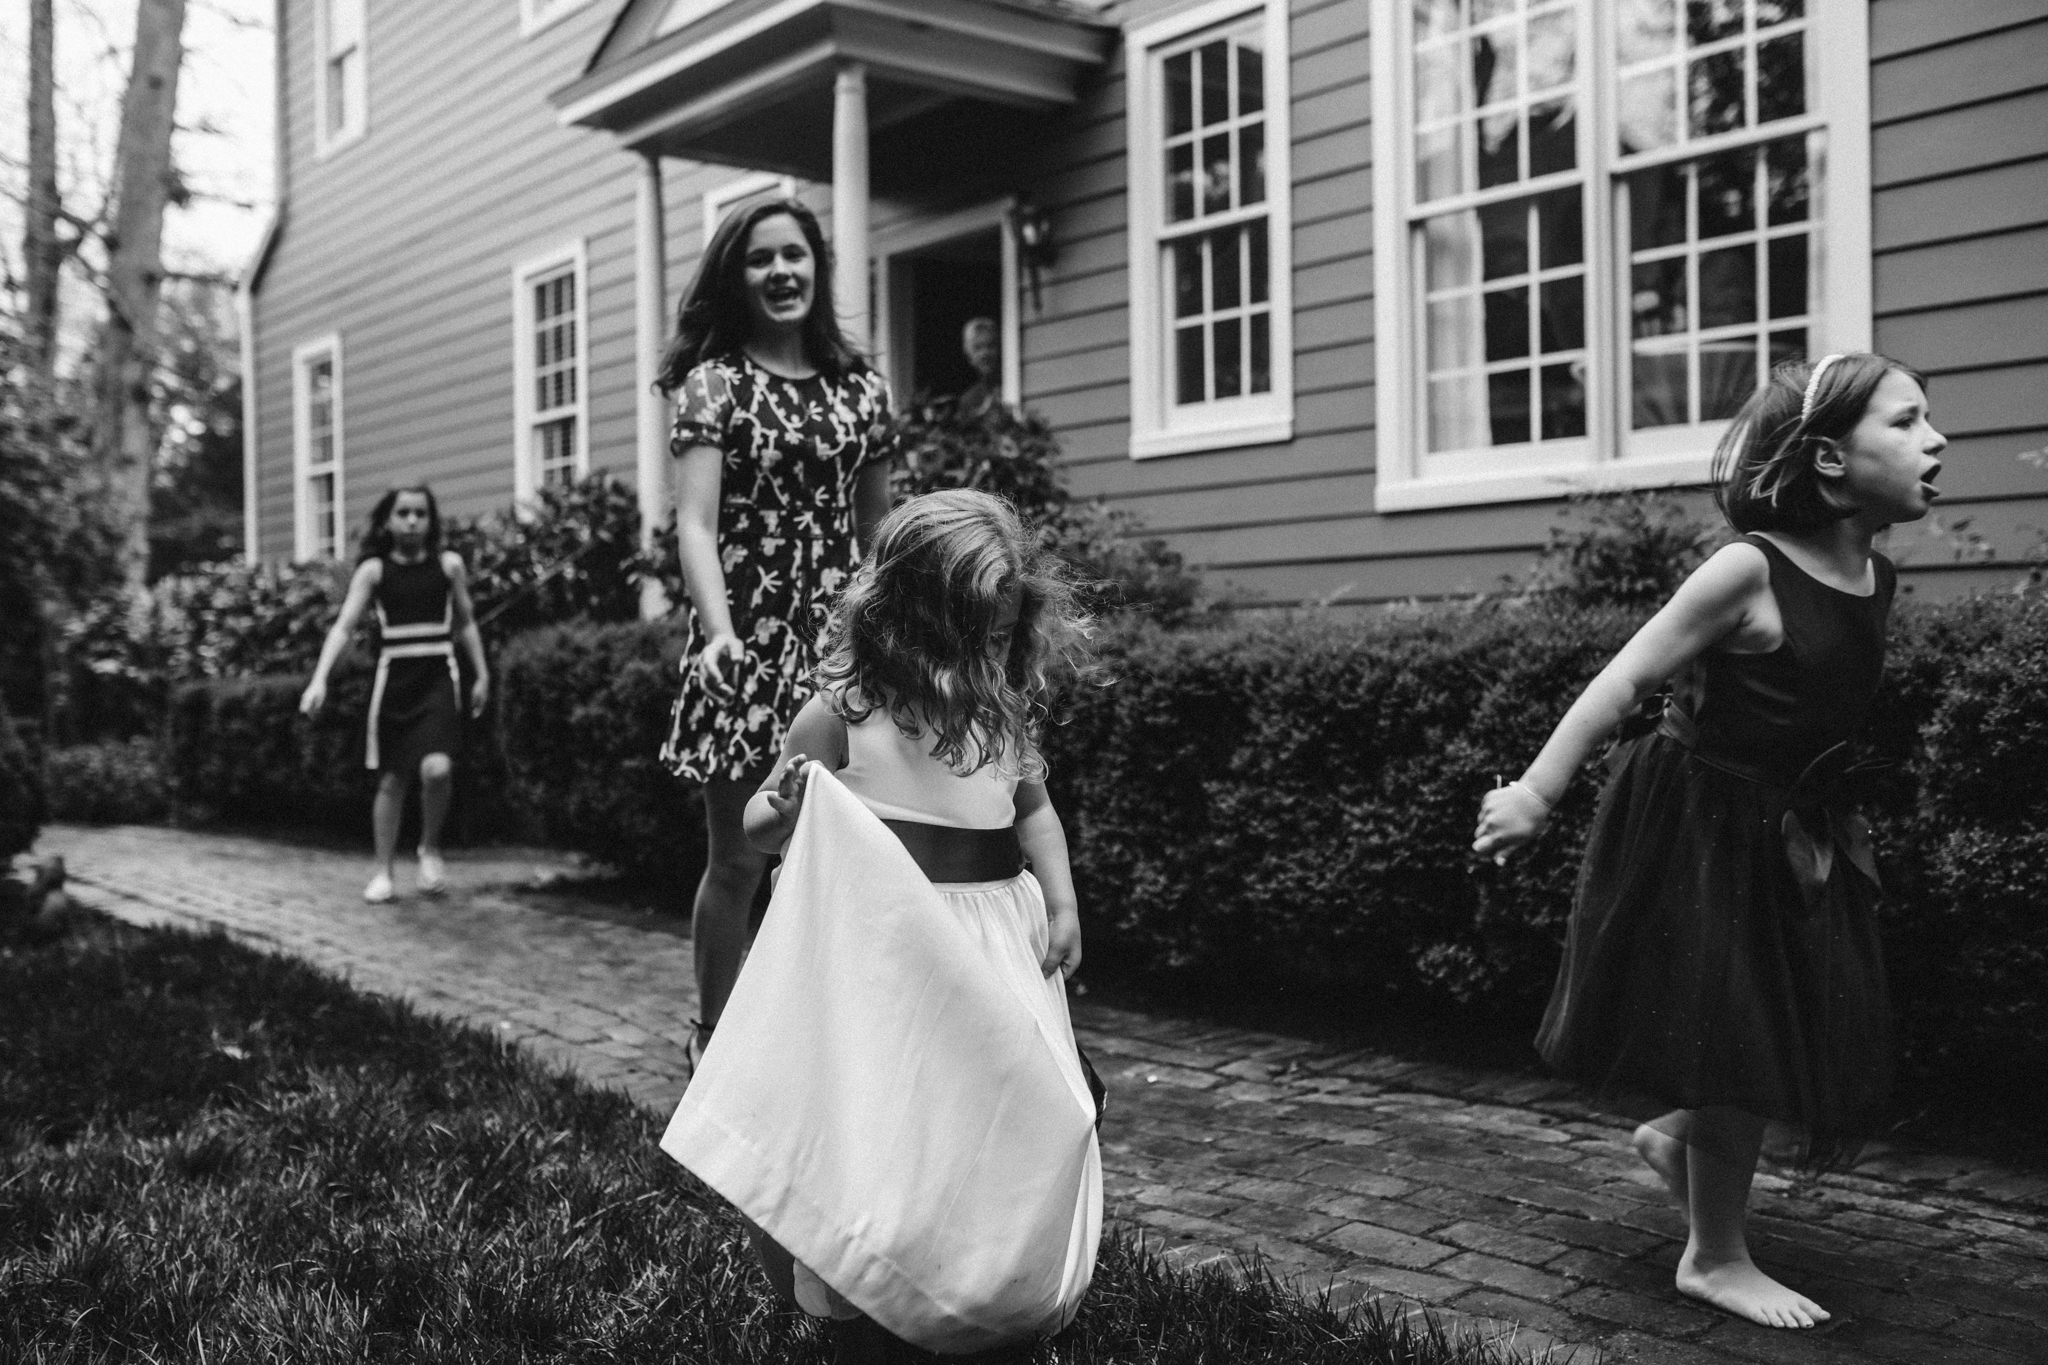 cook_wedding_richmond_virginia_rebecca_burt_photography-66.jpg